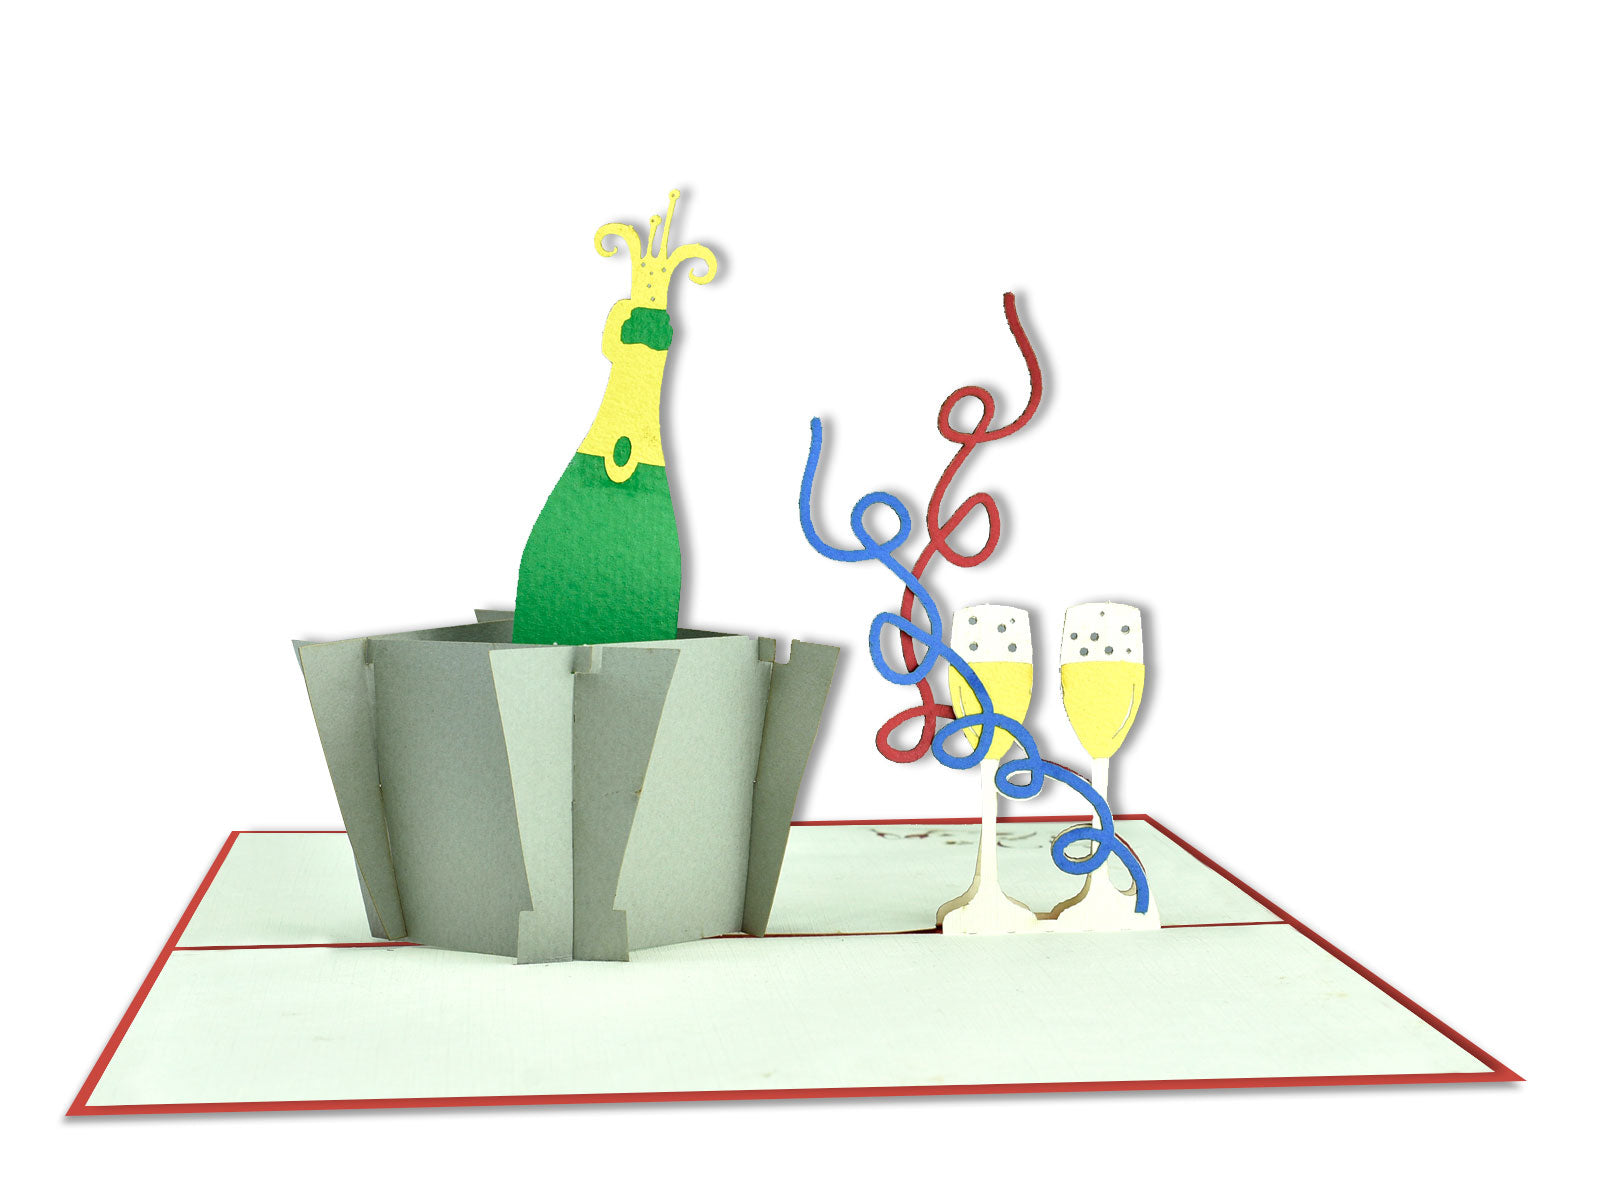 Champagne Happy Birthday Celebration 3D Creative Popcard